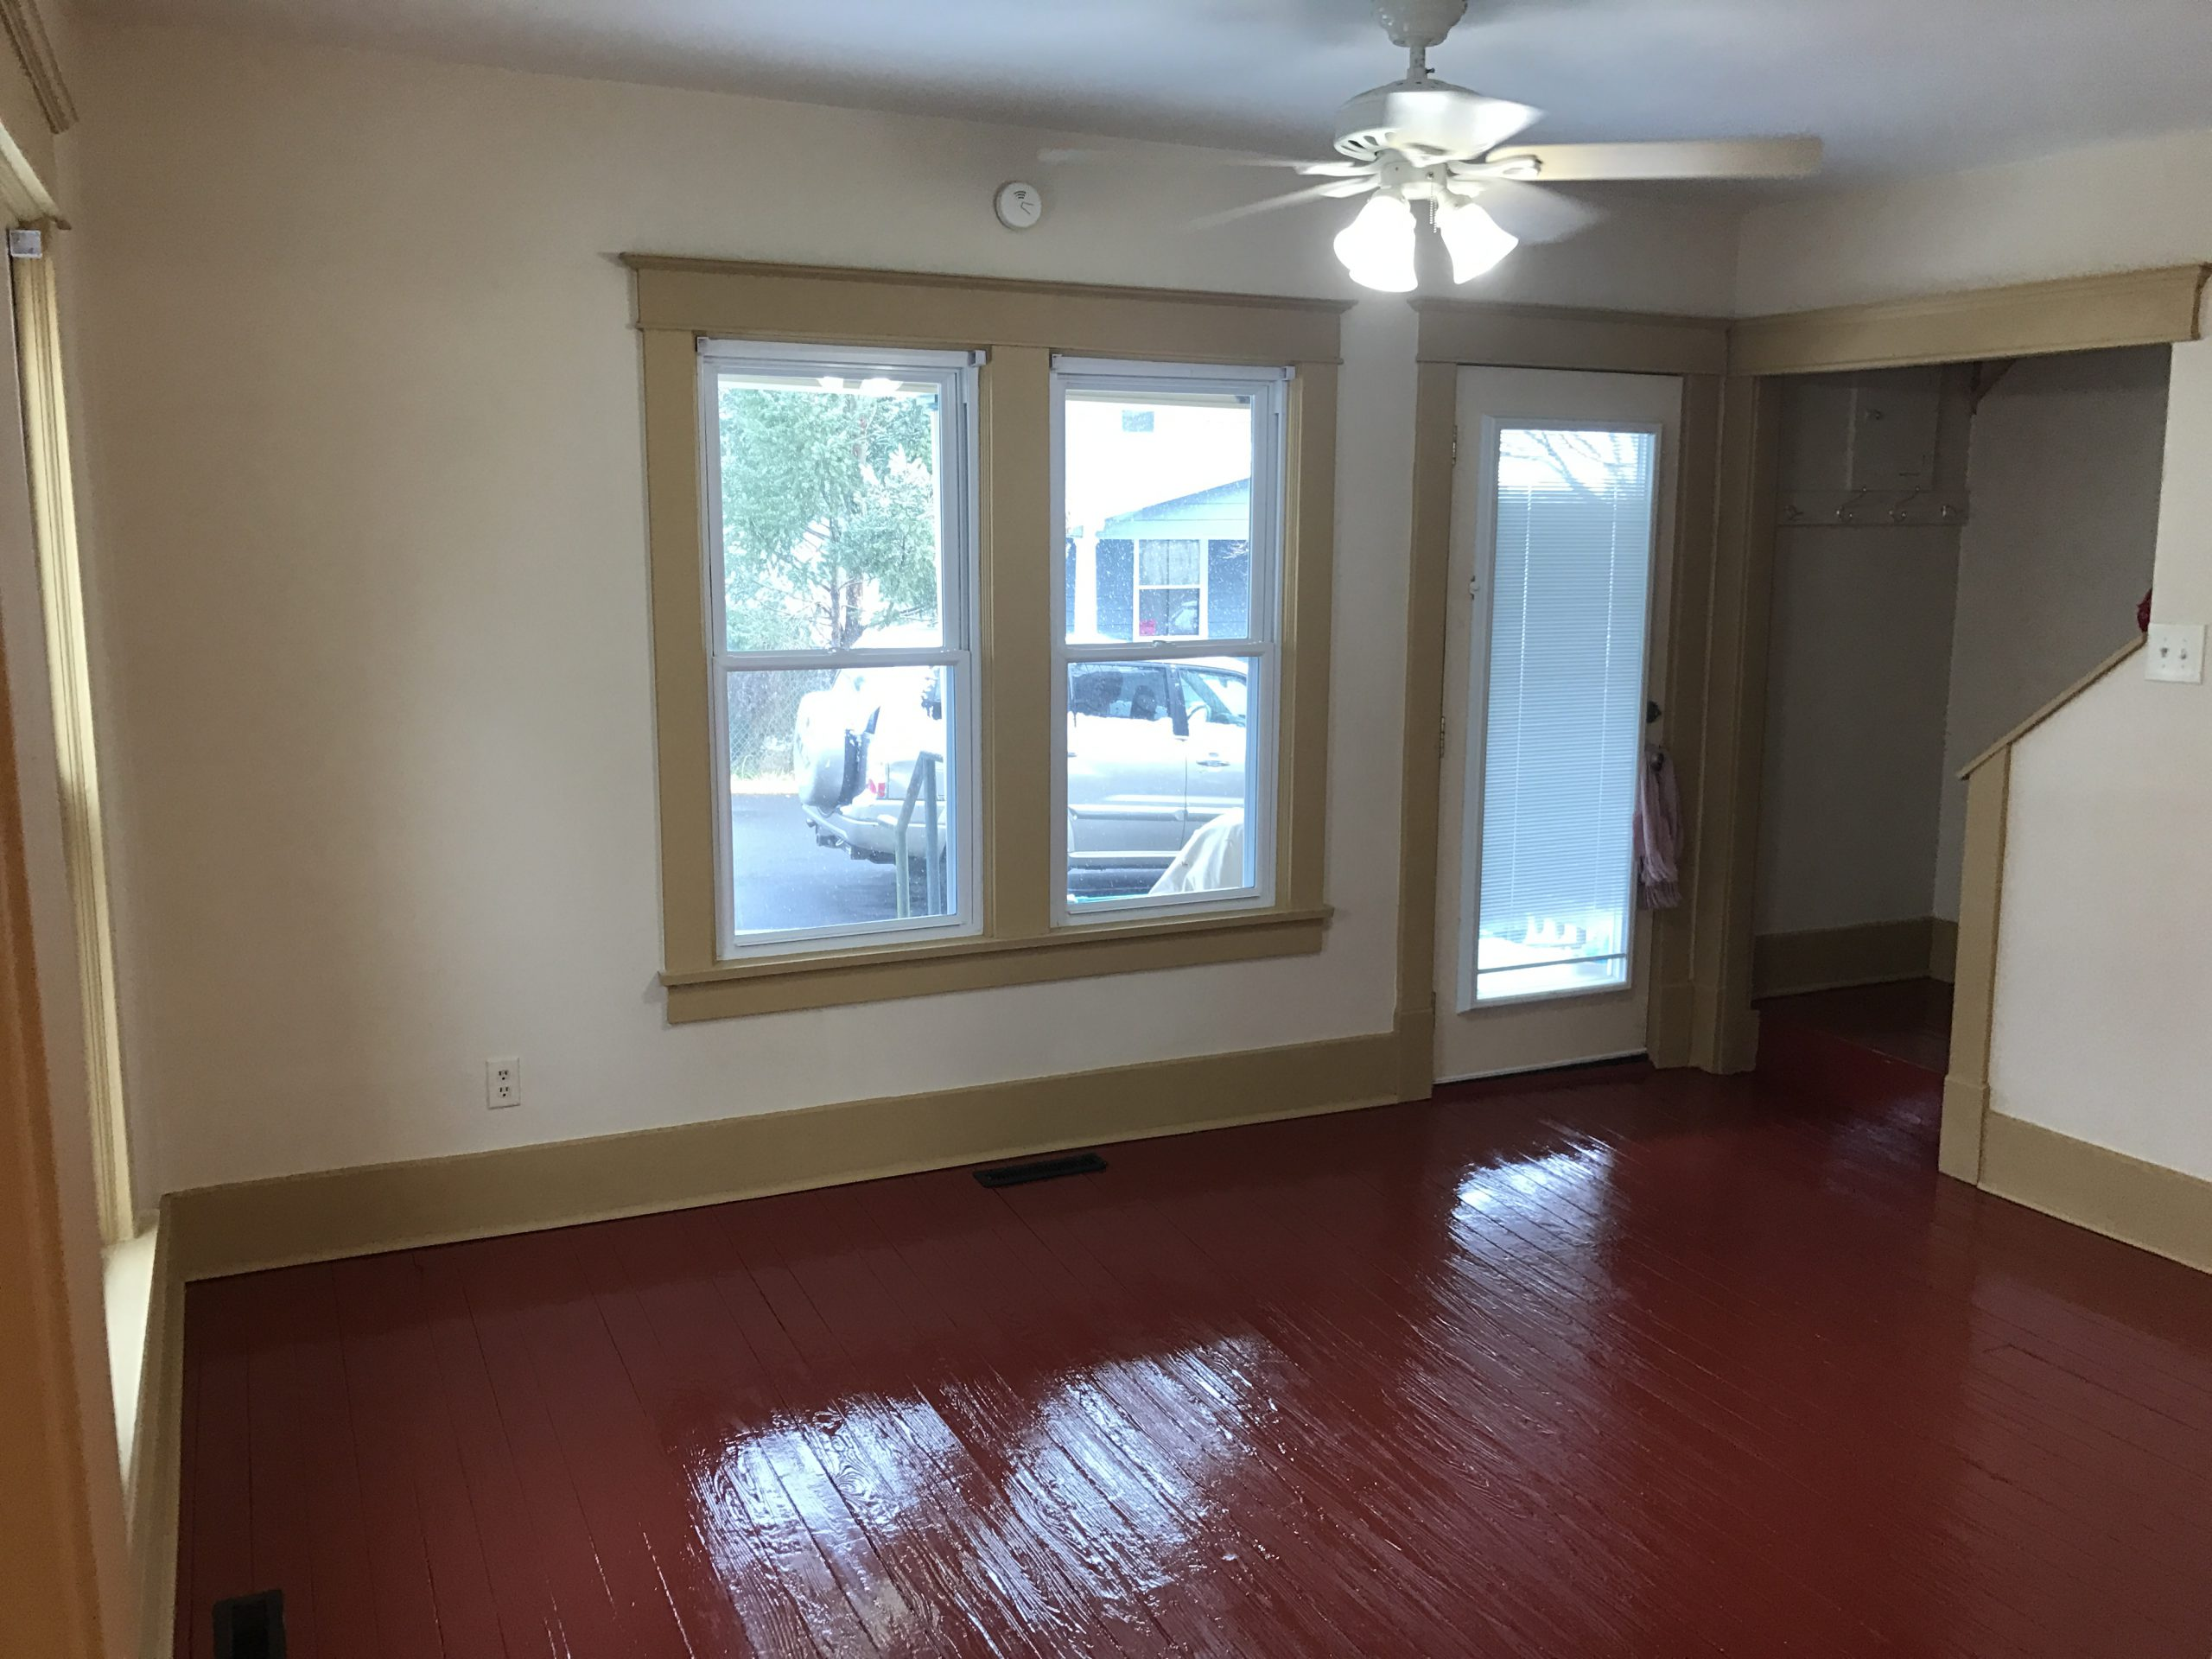 living room view with windows and front door